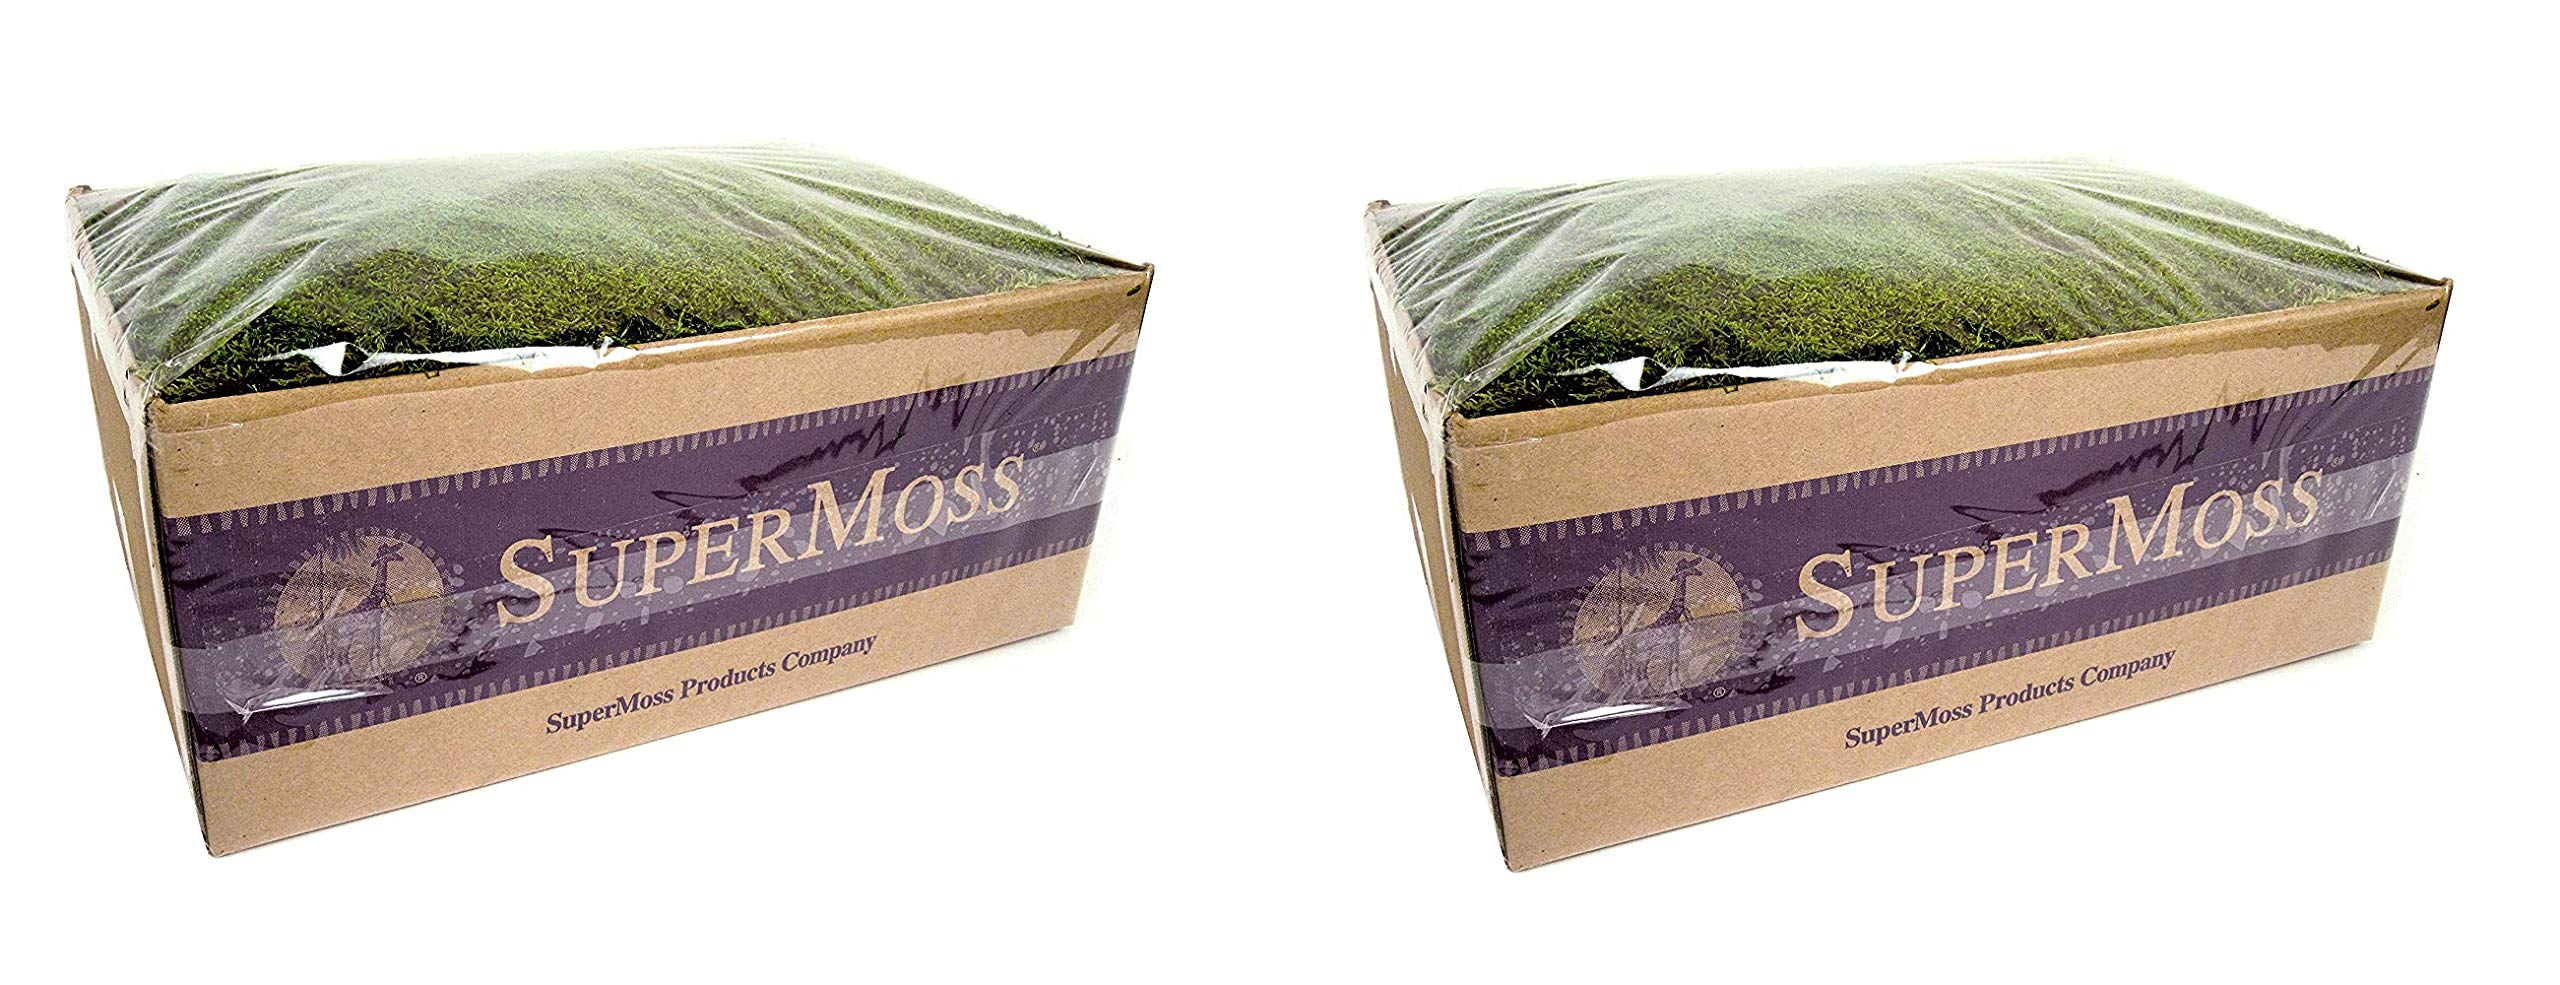 SuperMoss (21598) Sheet Moss Preserved, Fresh Green Wet Use (20-24 sq. ft. Approx 3.5lbs) (2-Pack)